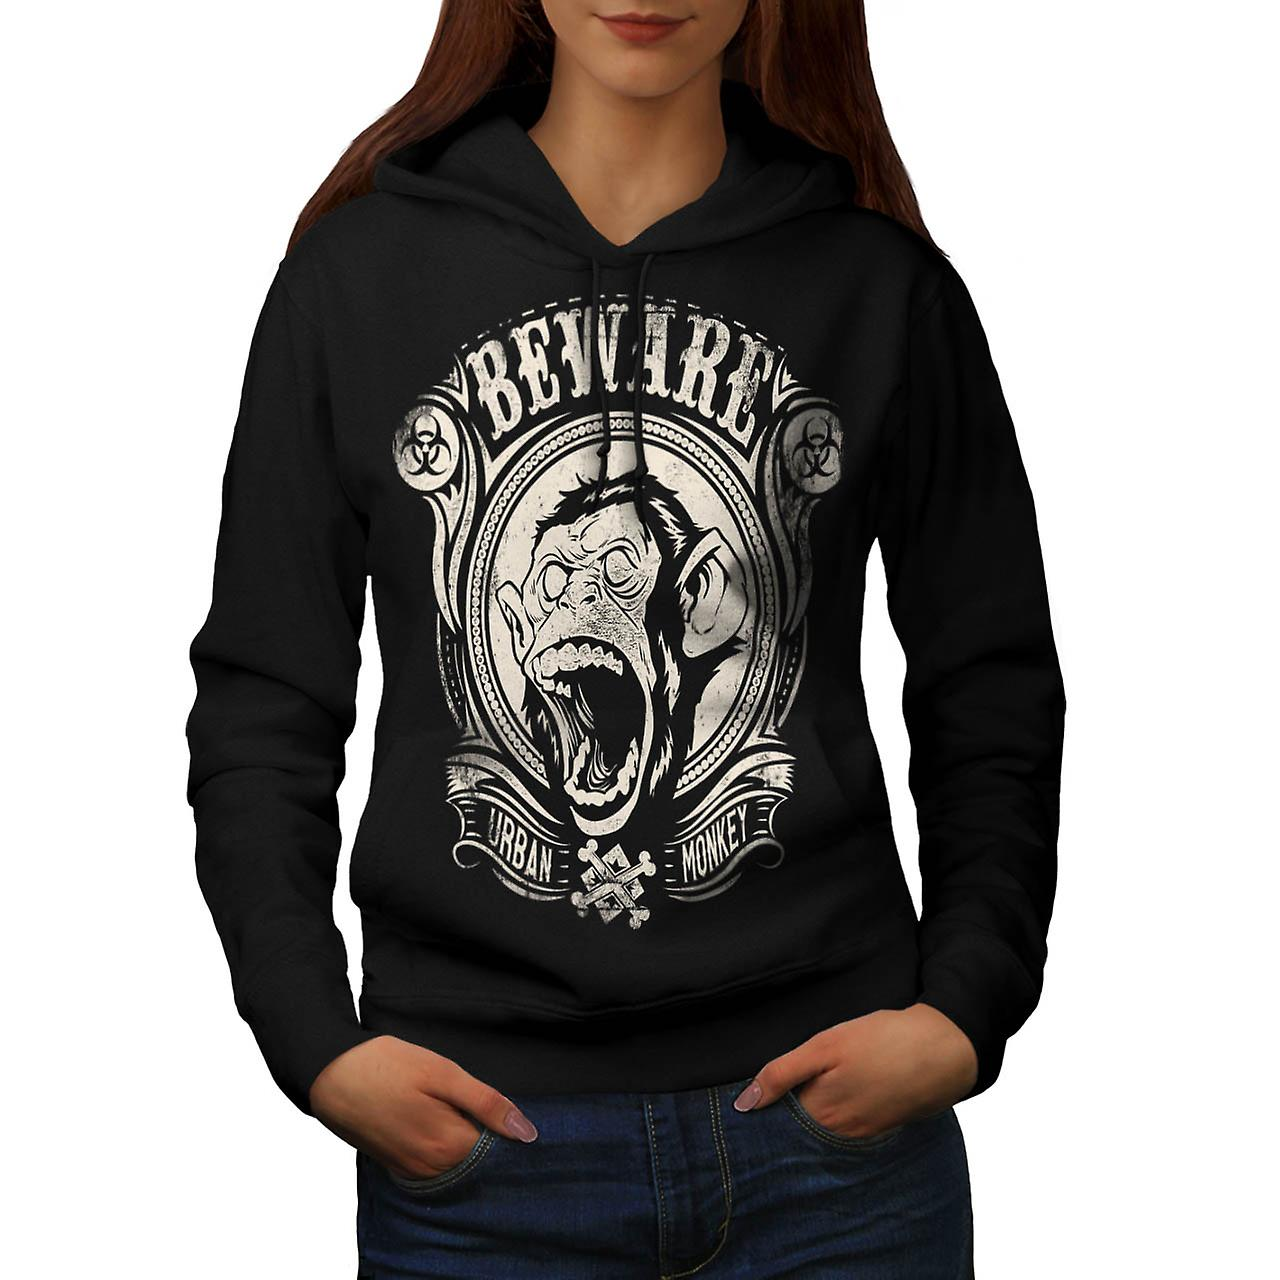 Beware Urban Monkey Danger Chimp Women Black Hoodie | Wellcoda